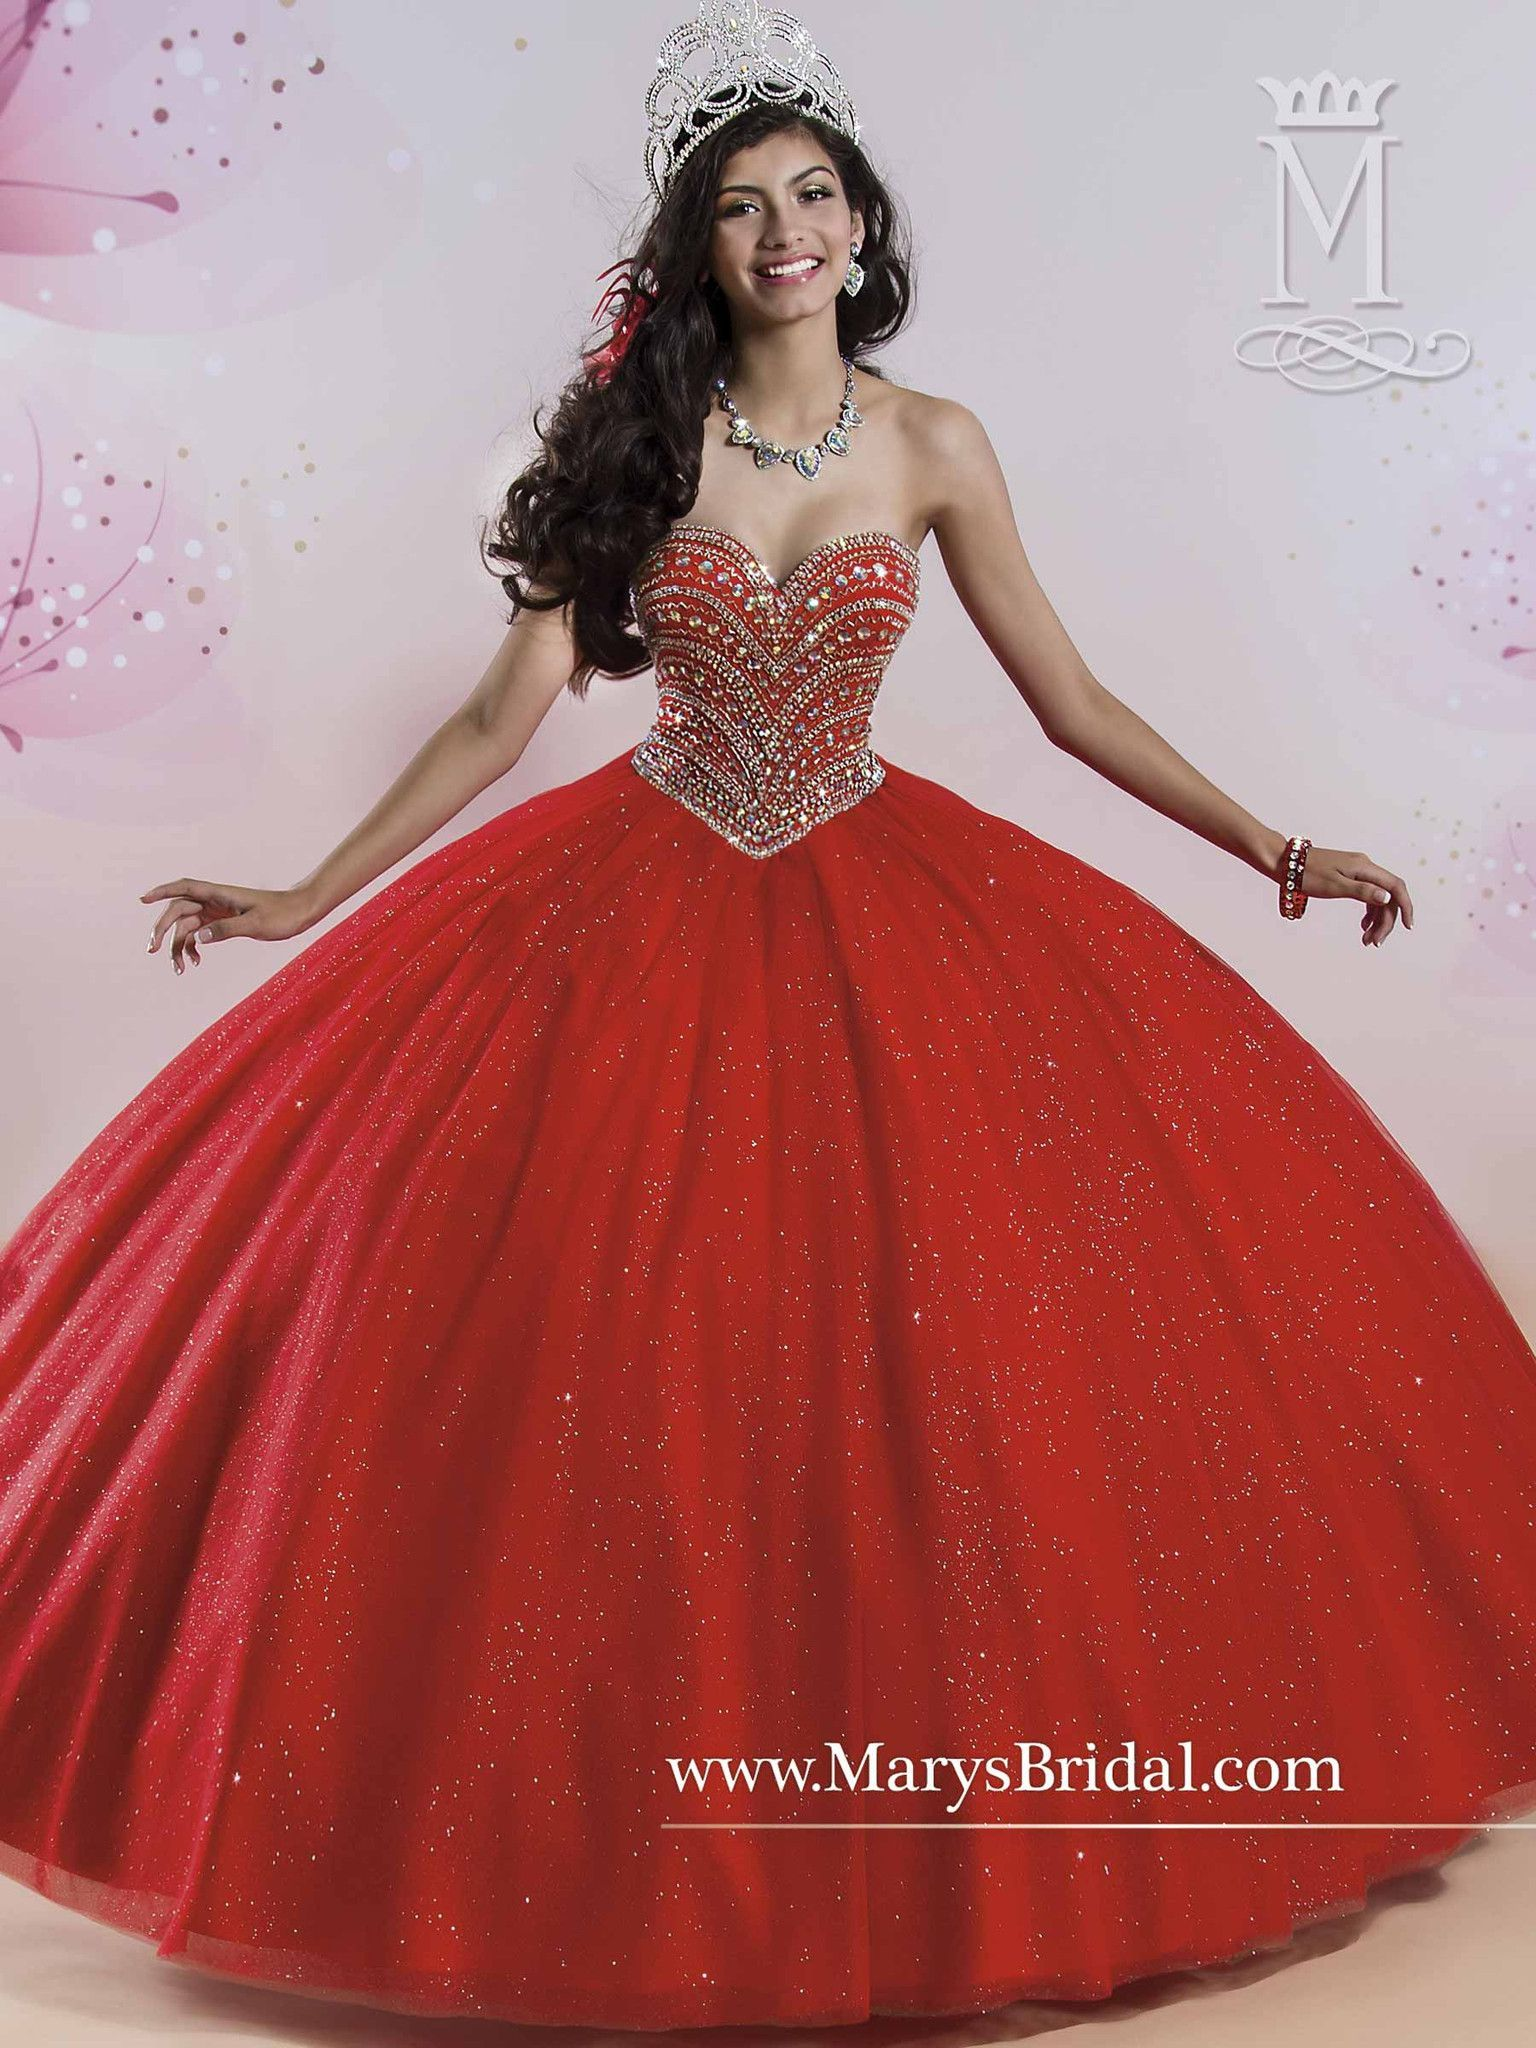 3536e864ff9 Mary s Bridal Princess Collection Quinceanera Dress Style 4Q408 ...